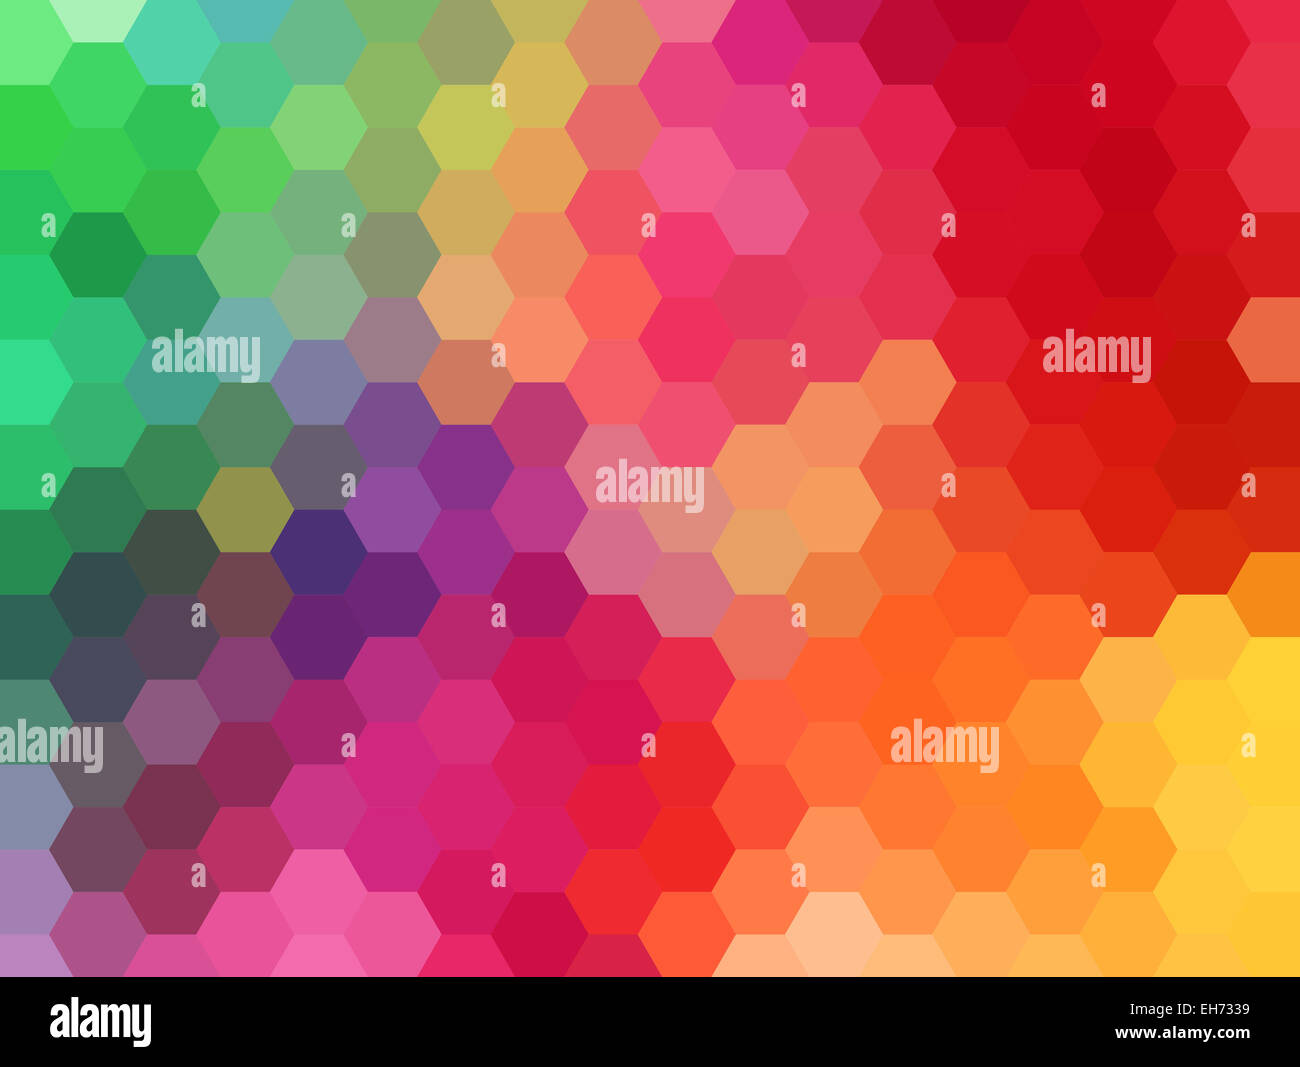 abstract colorful geometric vector background, hexagon pattern - Stock Image